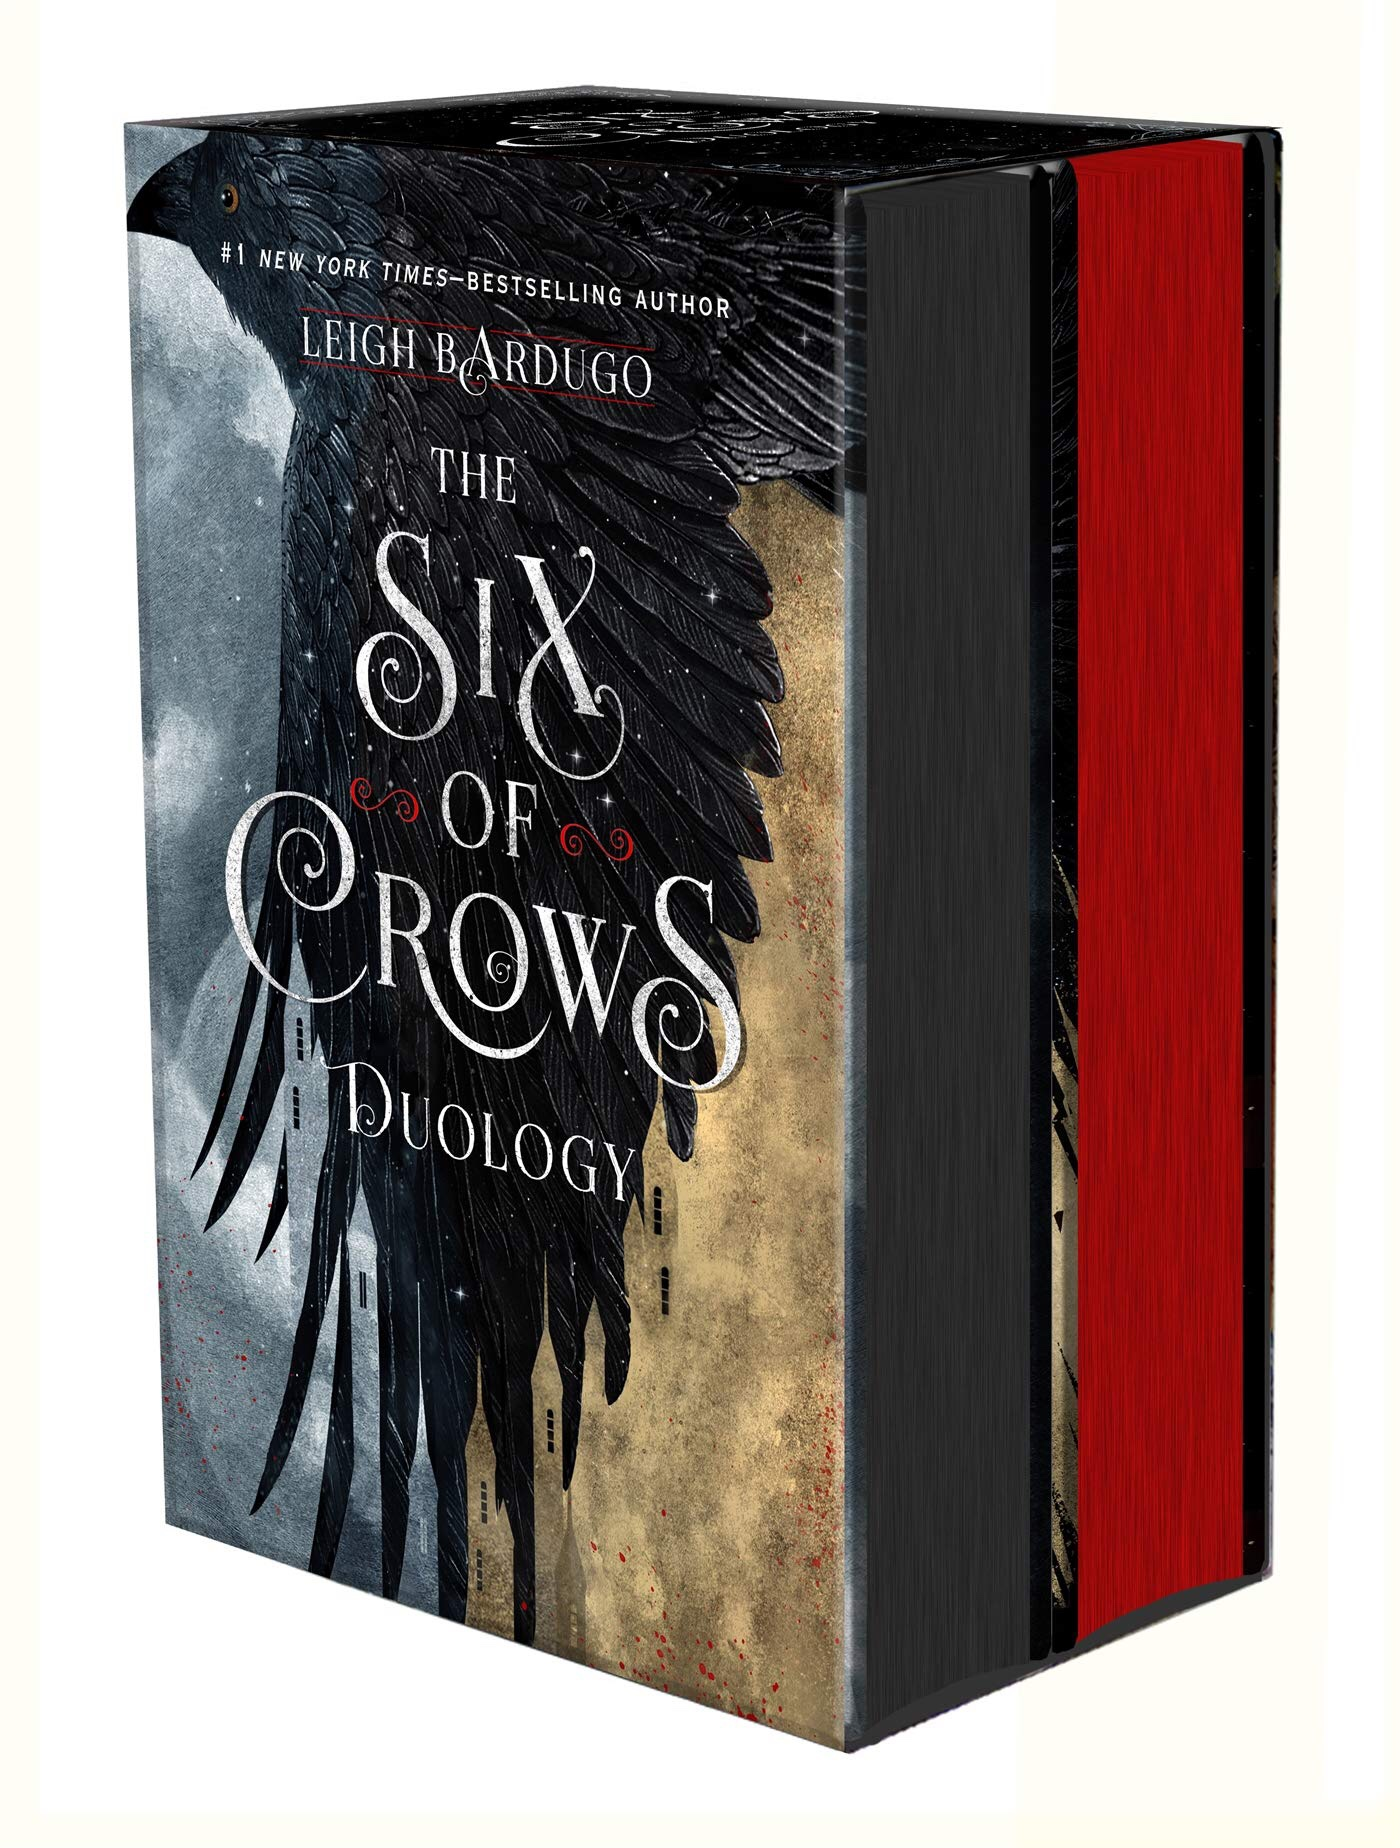 Six of Crows Book Covers